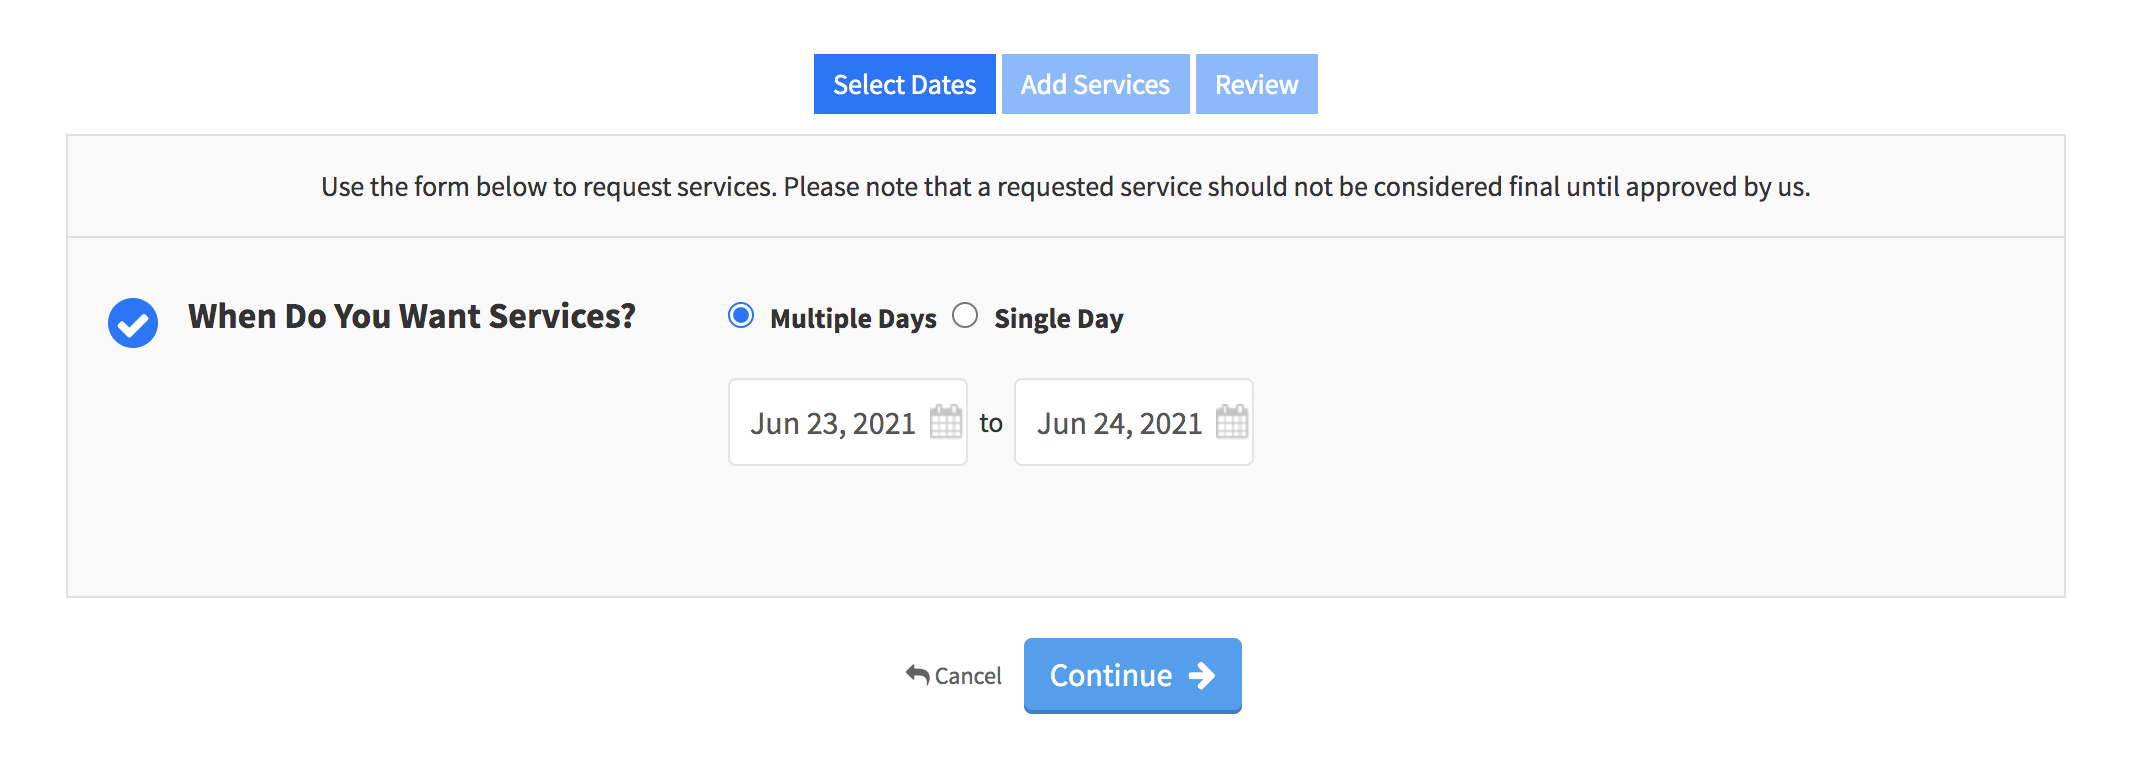 Image of service request form with option to select Multiple Days or a Single Day with a calendar option to select the dates needed